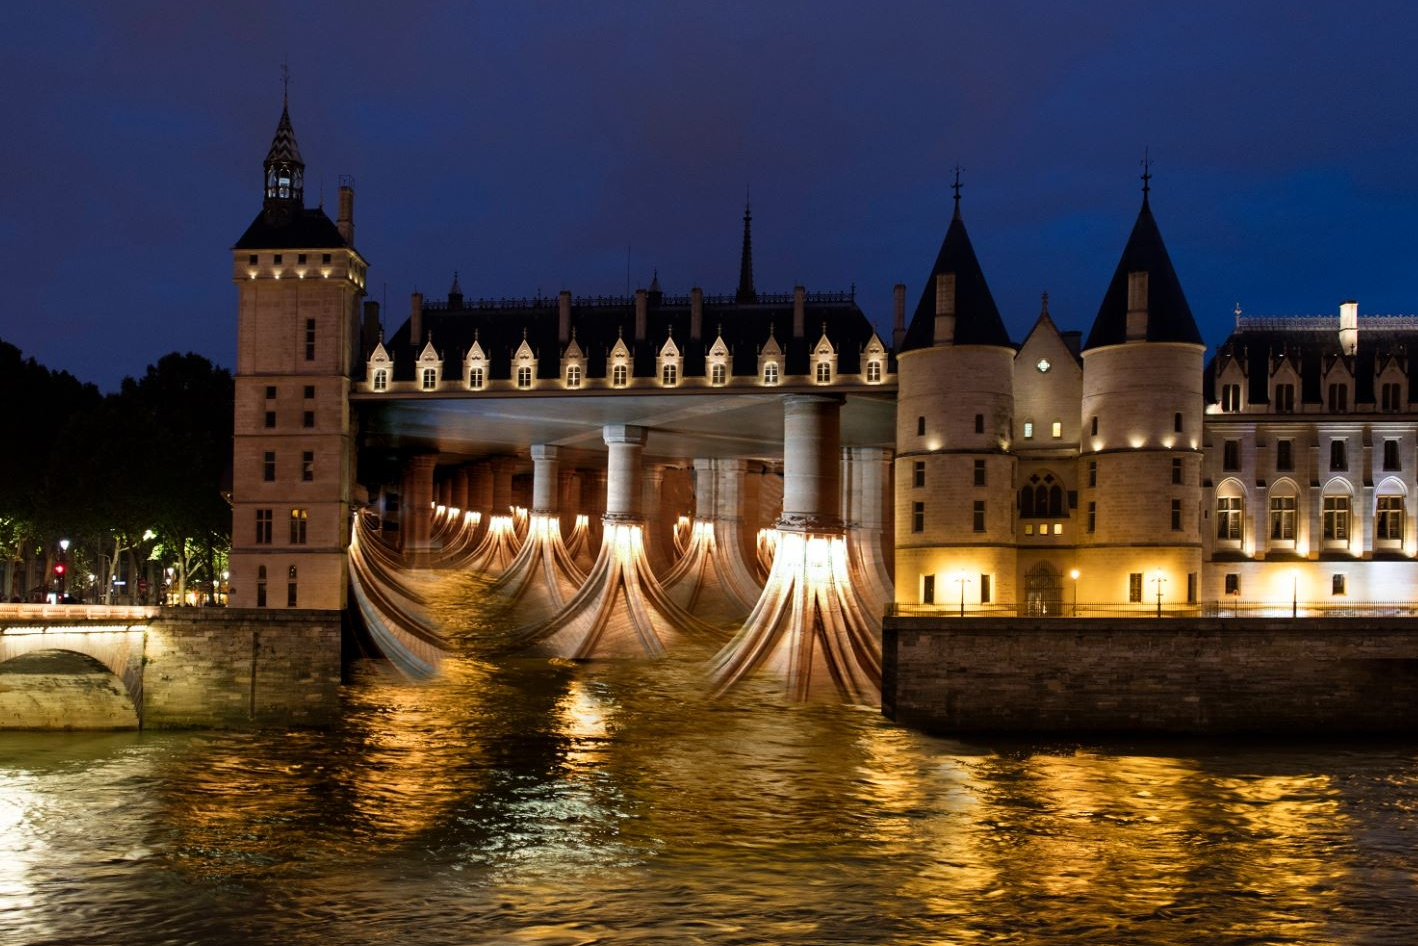 Pierre Delavie, Love Overflows, Conciergerie, Paris. simulation of the project for Paris Nuit Blanche 2016, courtesy of the artist